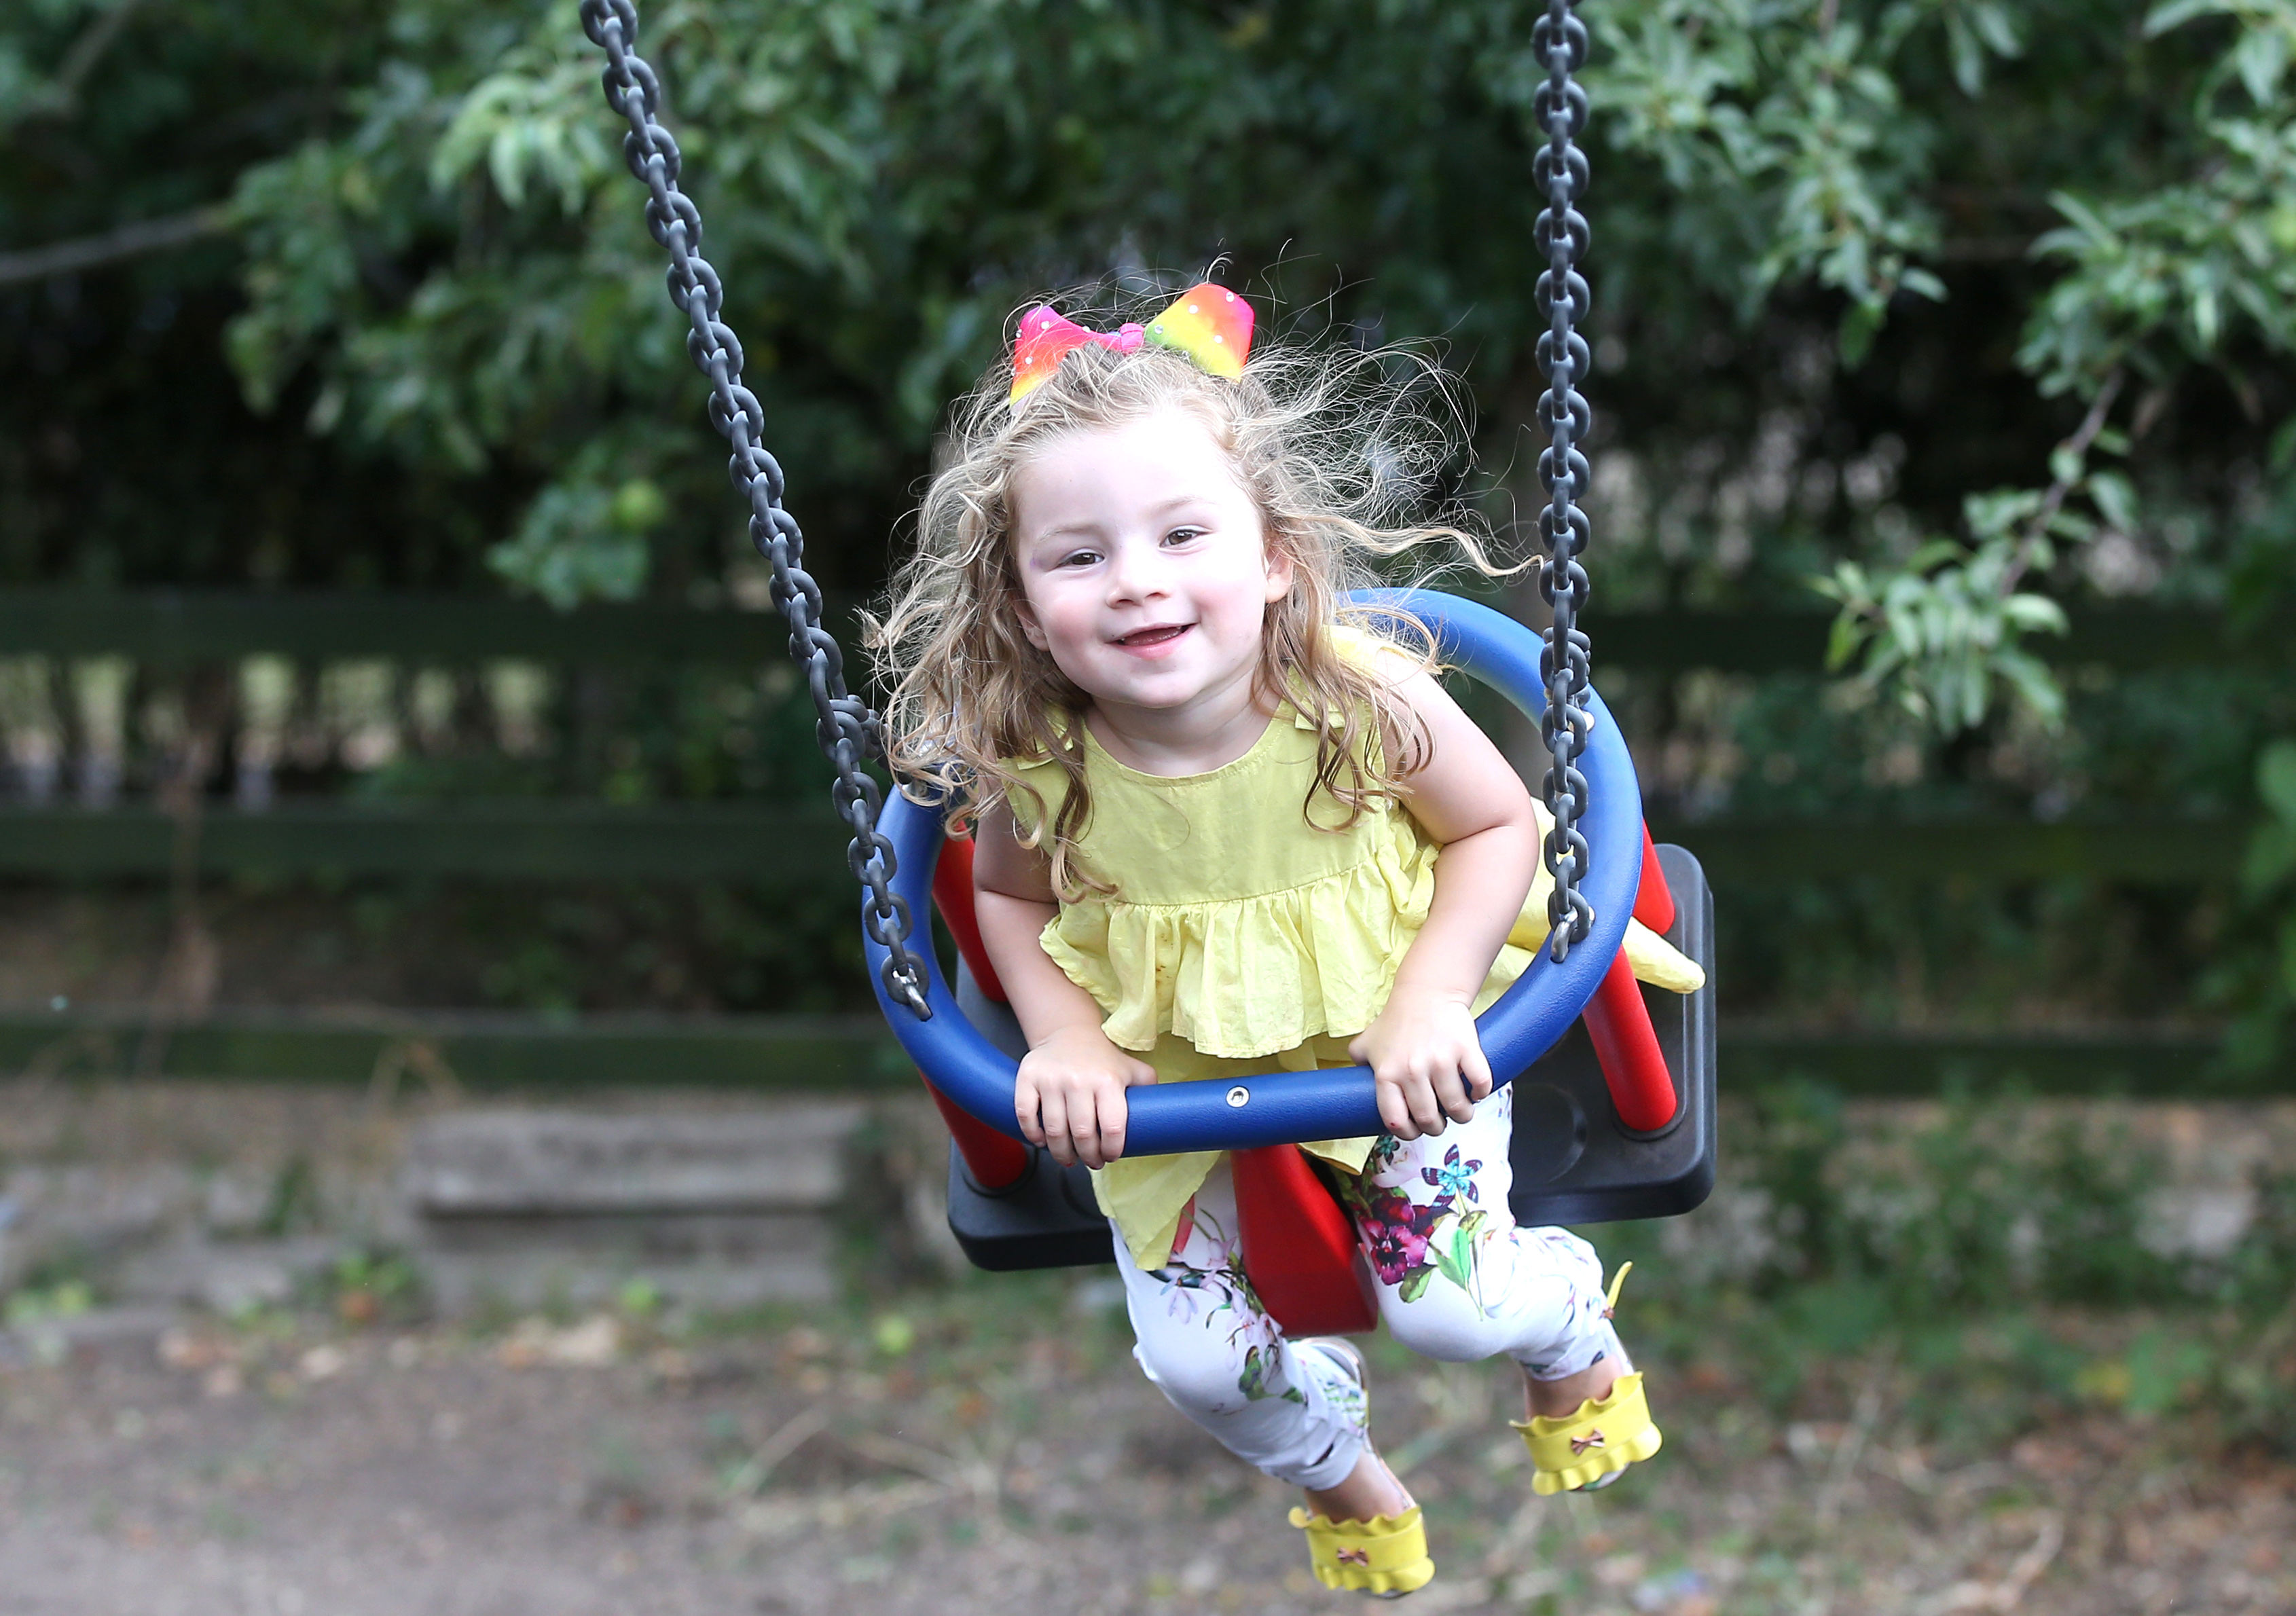 The-X-best-things-to-do-with-your-kids-in-Hertfordshire-5-